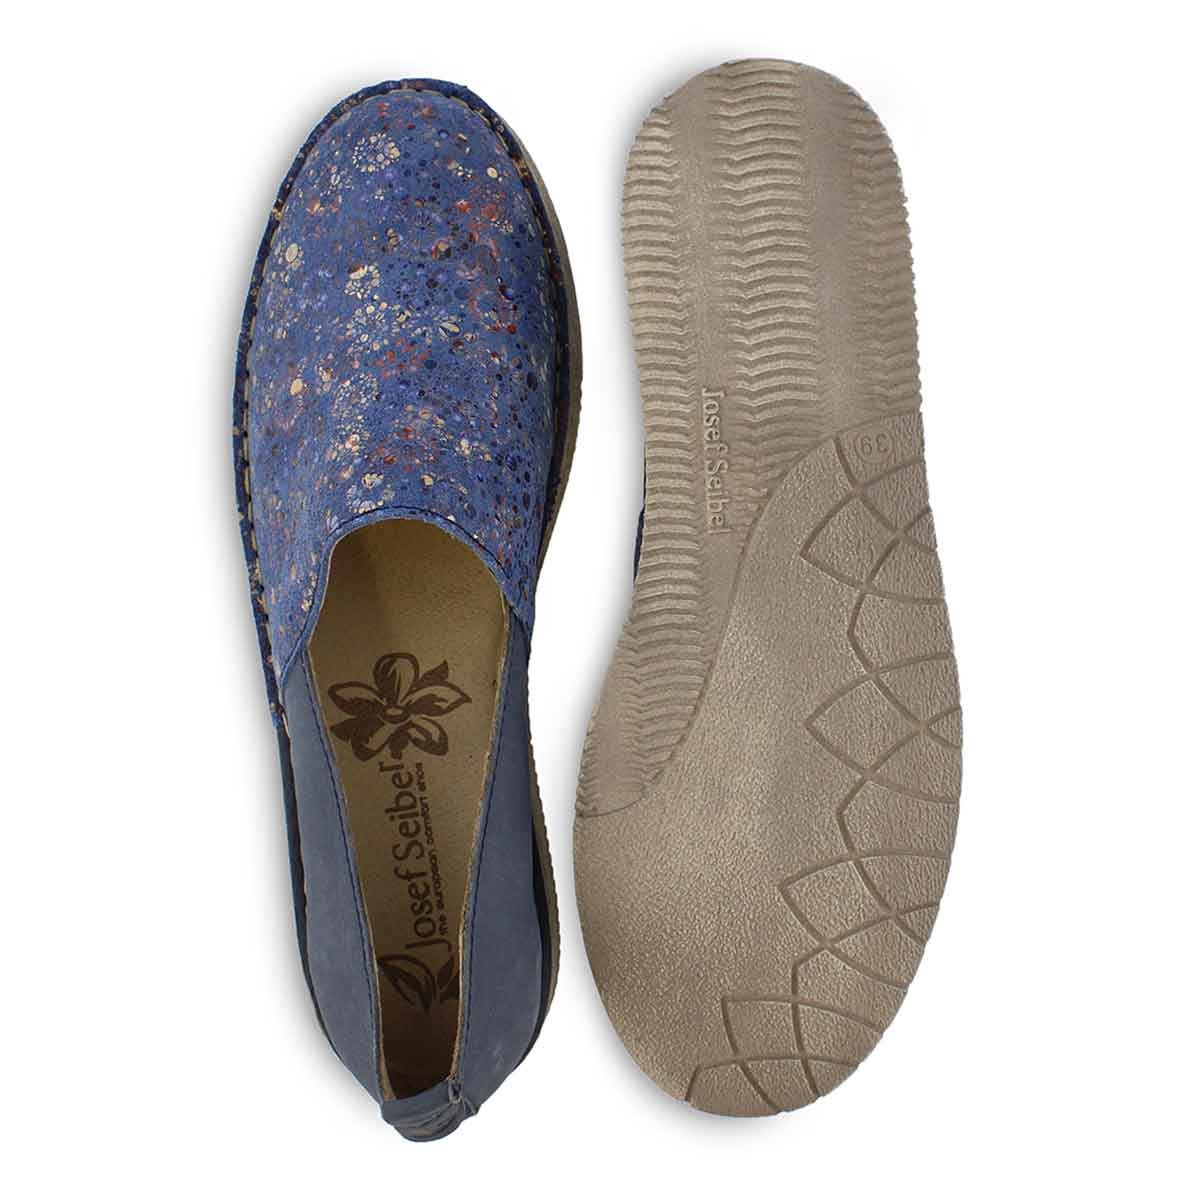 Lds Sofie 33 ocean slip on shoe